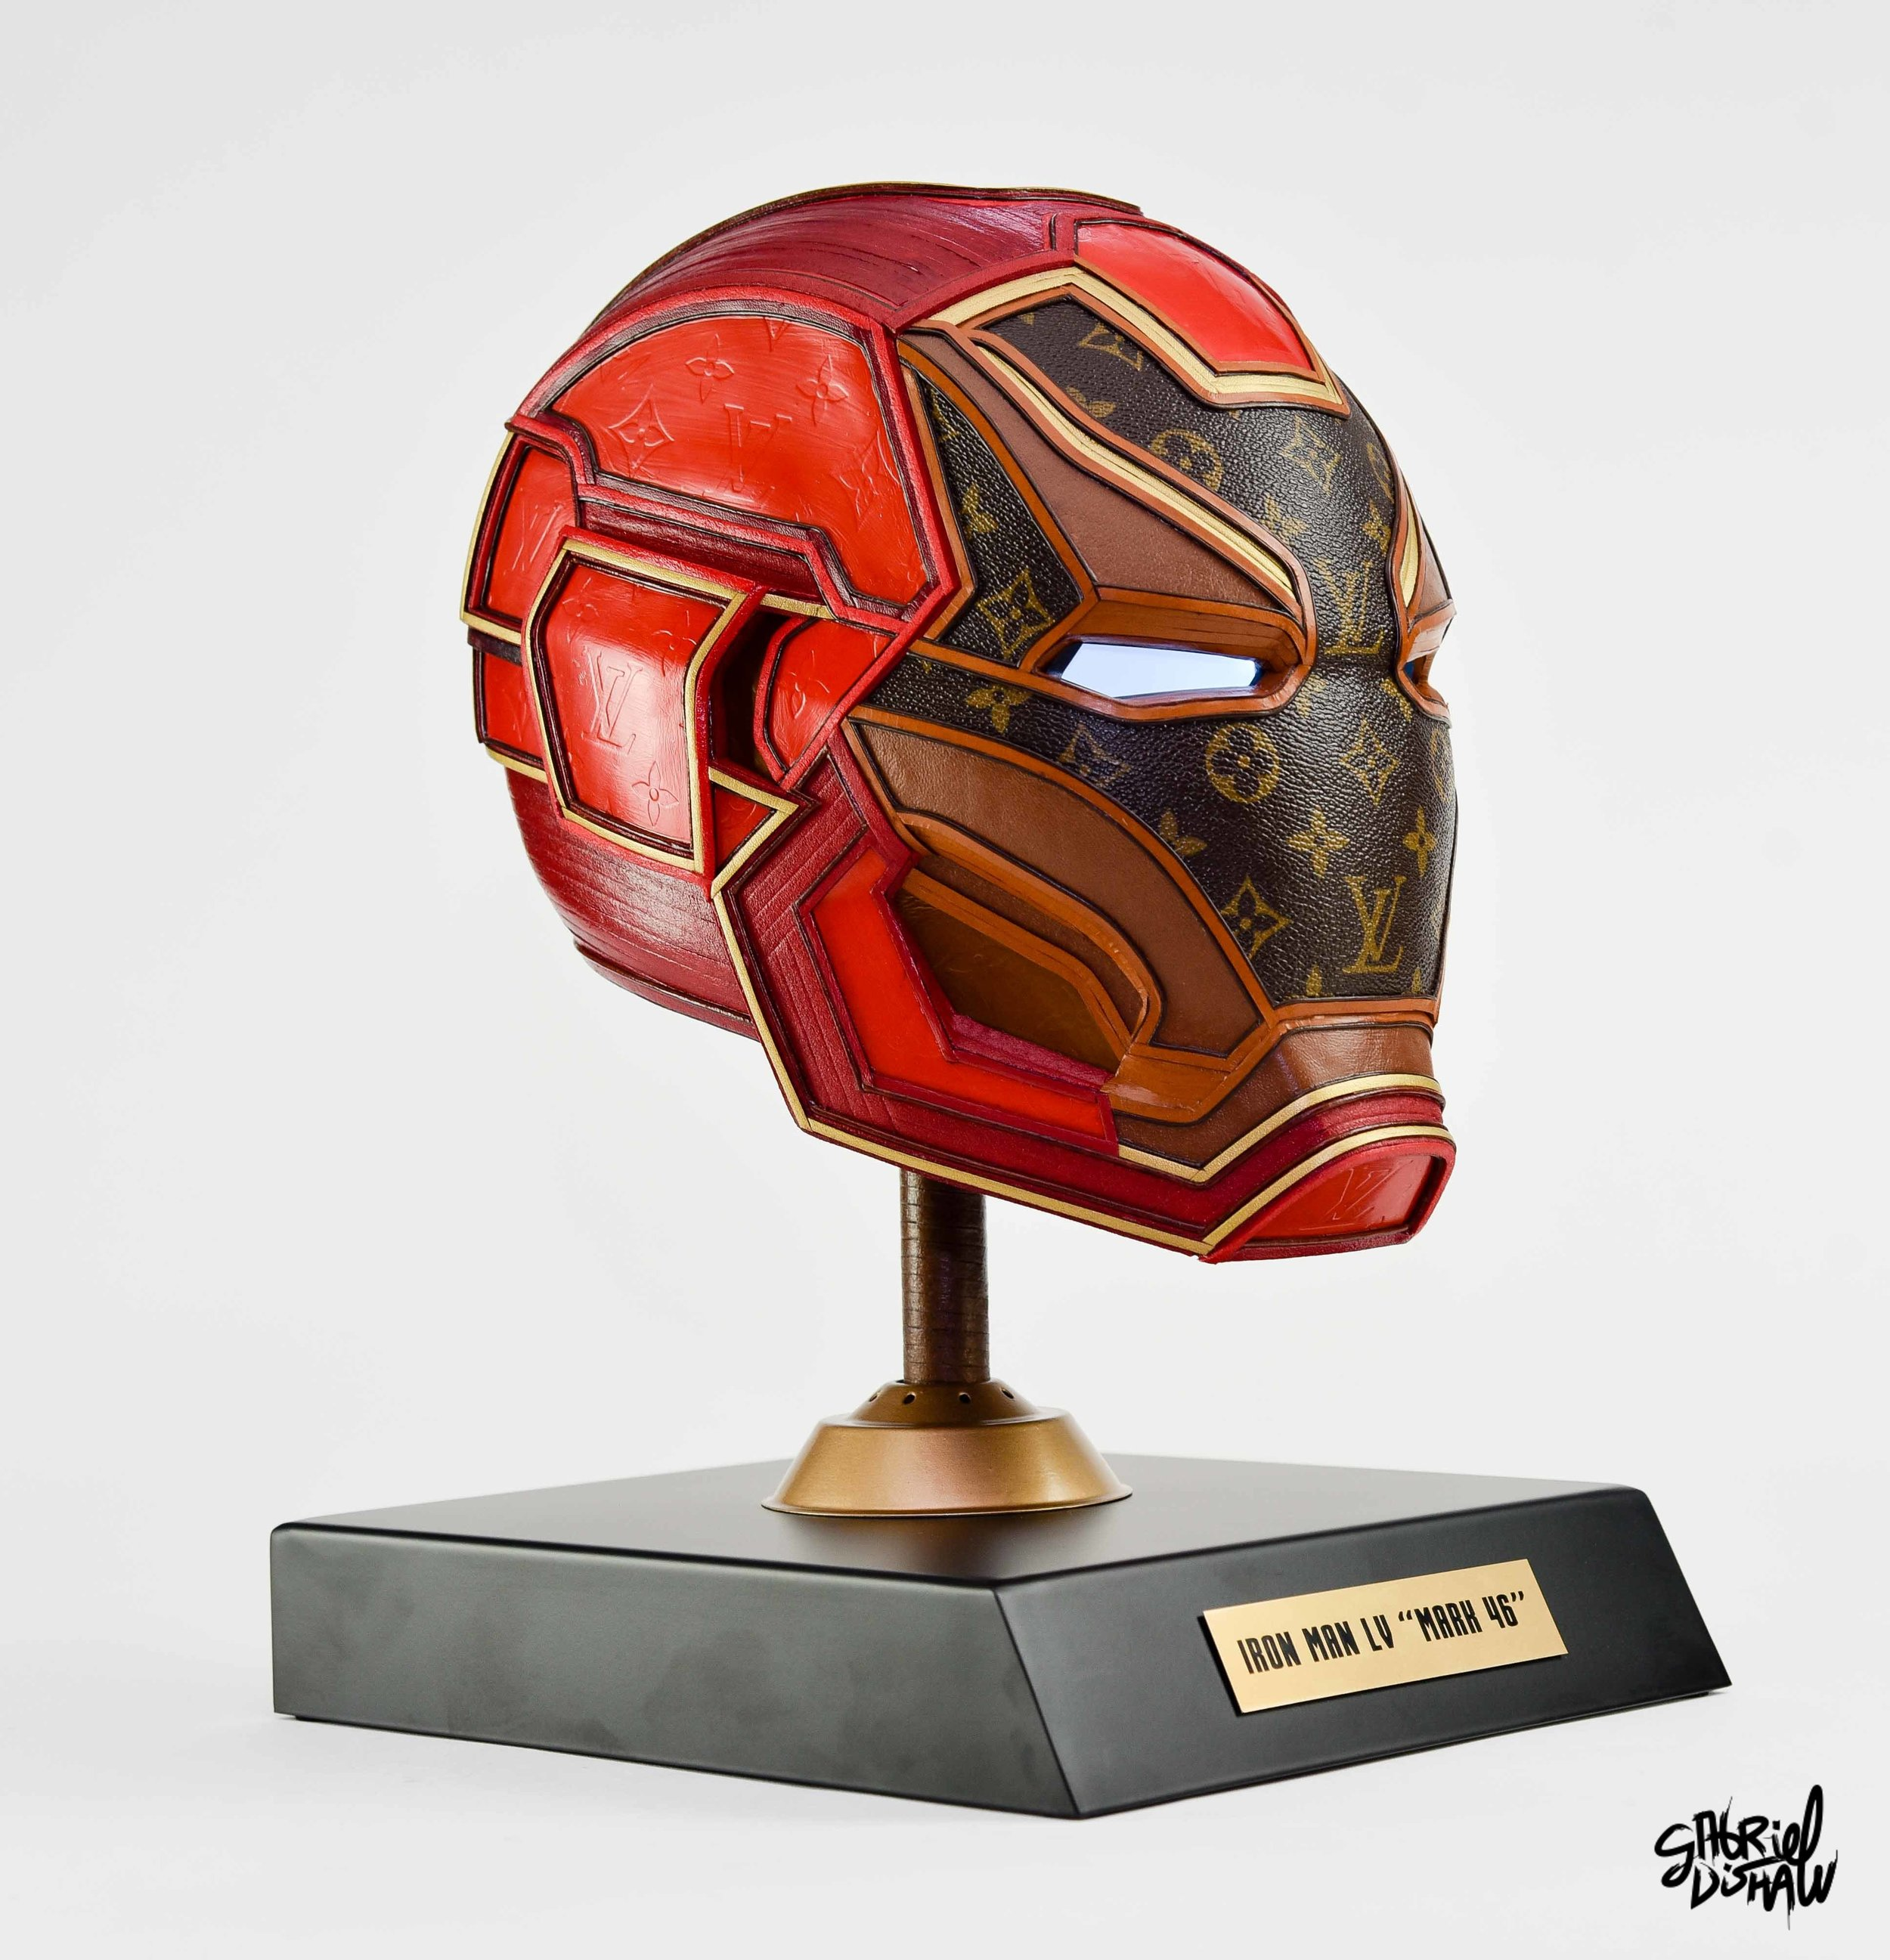 Gabriel Dishaw Iron Man LV Mark 46 (65 of 99).jpg